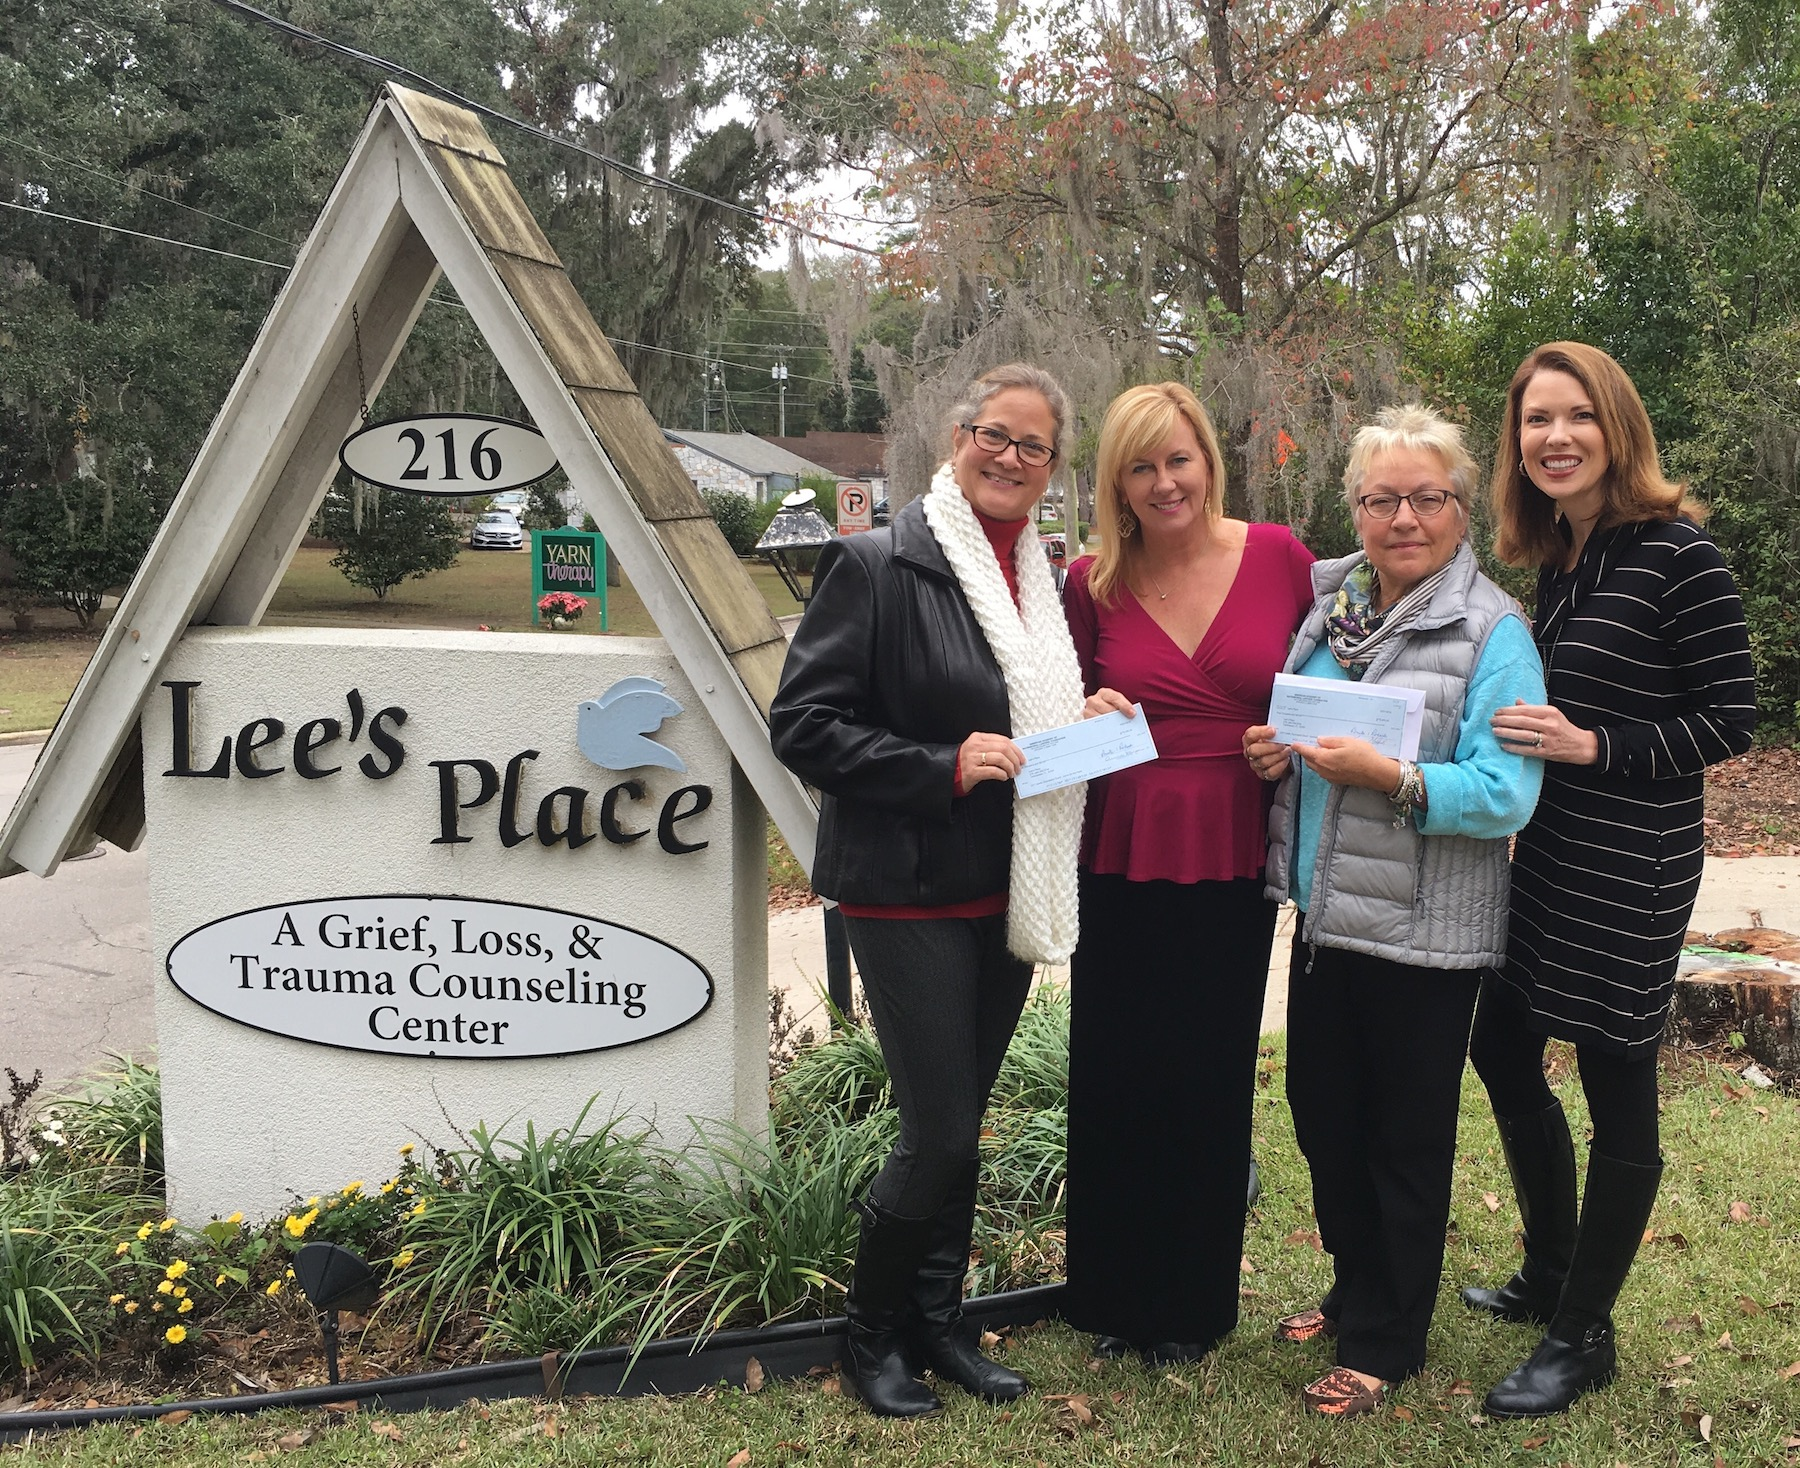 The AAML Foundation presenting a check to Lee's Place staff on Tuesday, December 20th, 2016.